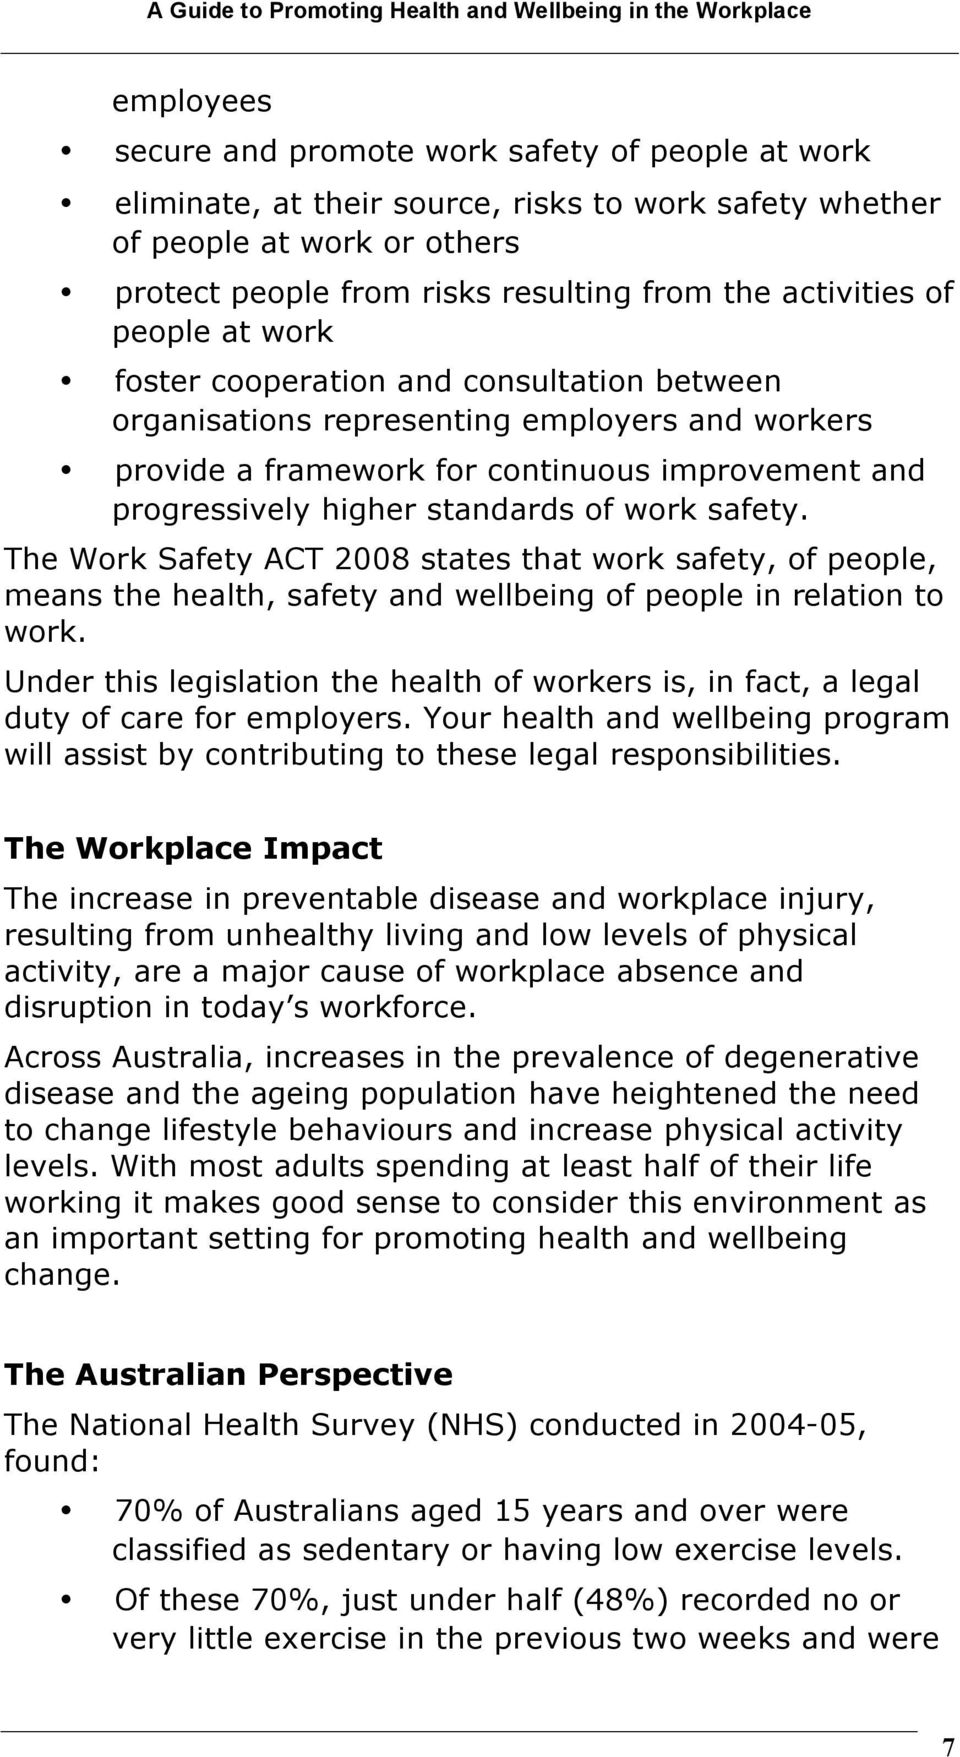 work safety. The Work Safety ACT 2008 states that work safety, of people, means the health, safety and wellbeing of people in relation to work.